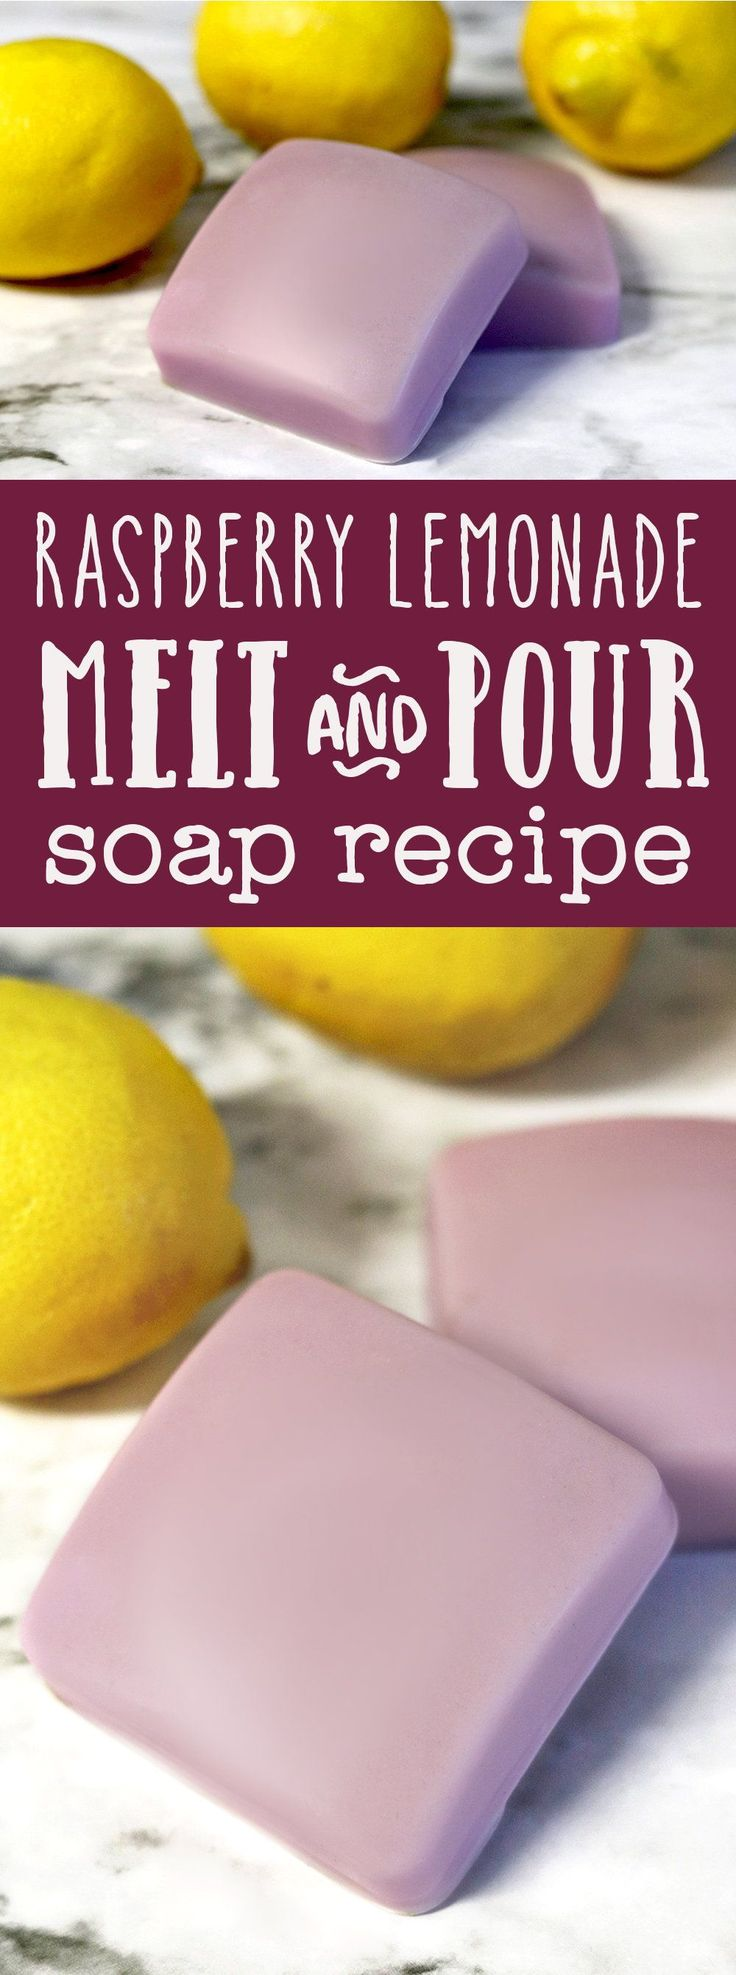 This raspberry lemonade melt and pour soap recipe takes just 10 minutes to make, making it quick, easy, and inexpensive craft. Plus learn about melt and pour soapmaking additives you can use to create your own custom melt and pour soap recipes! #soap #soa